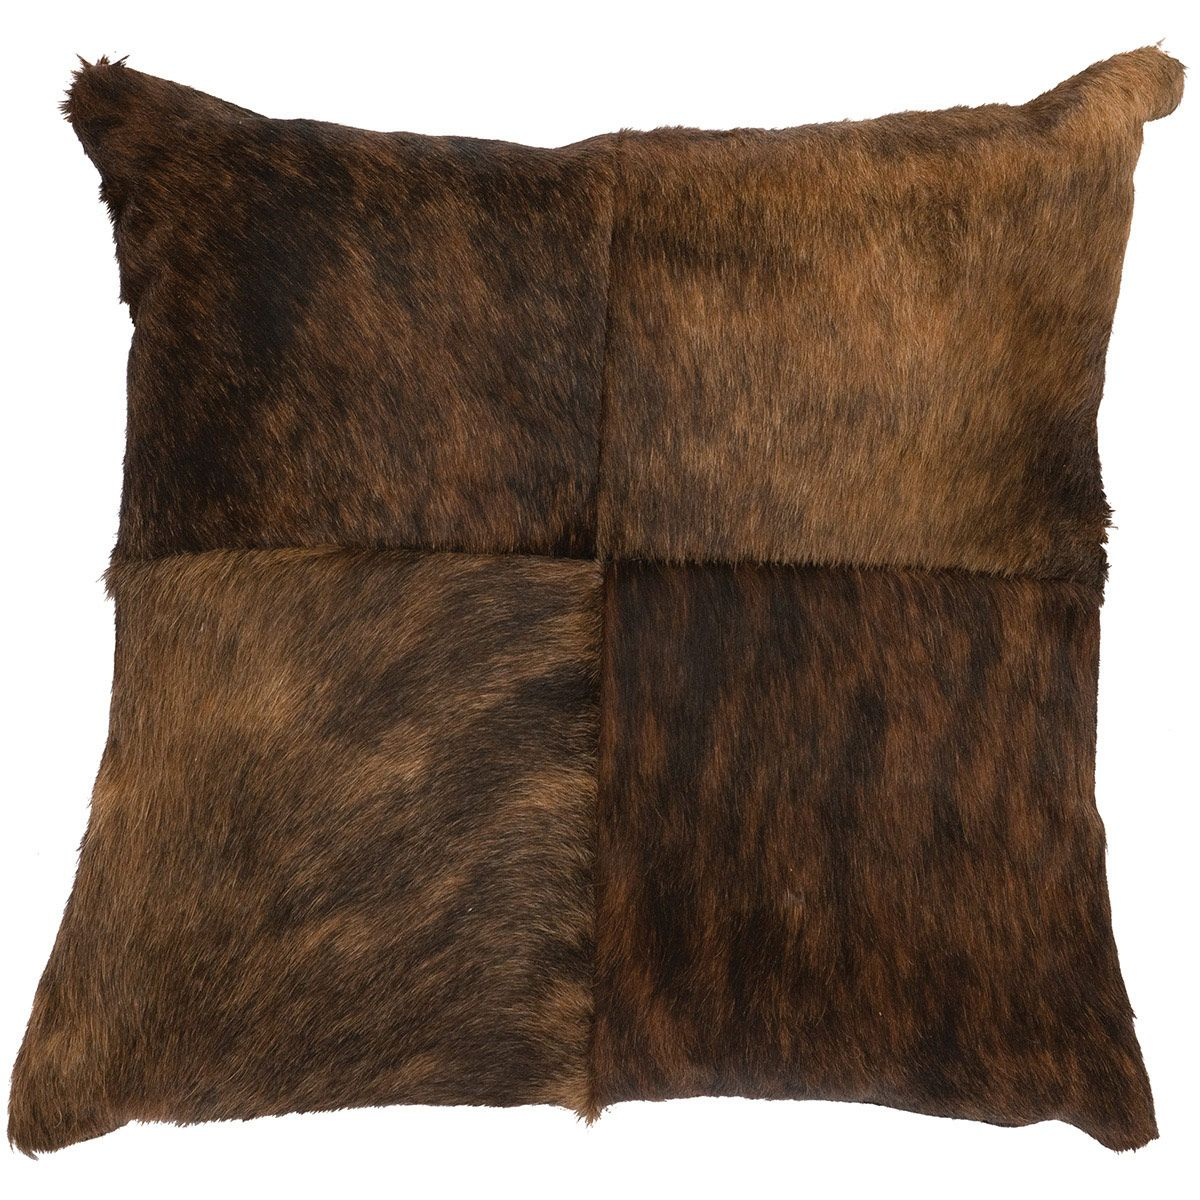 Four Square Dark Brindled Hair on Hide Pillow with Fabric Back